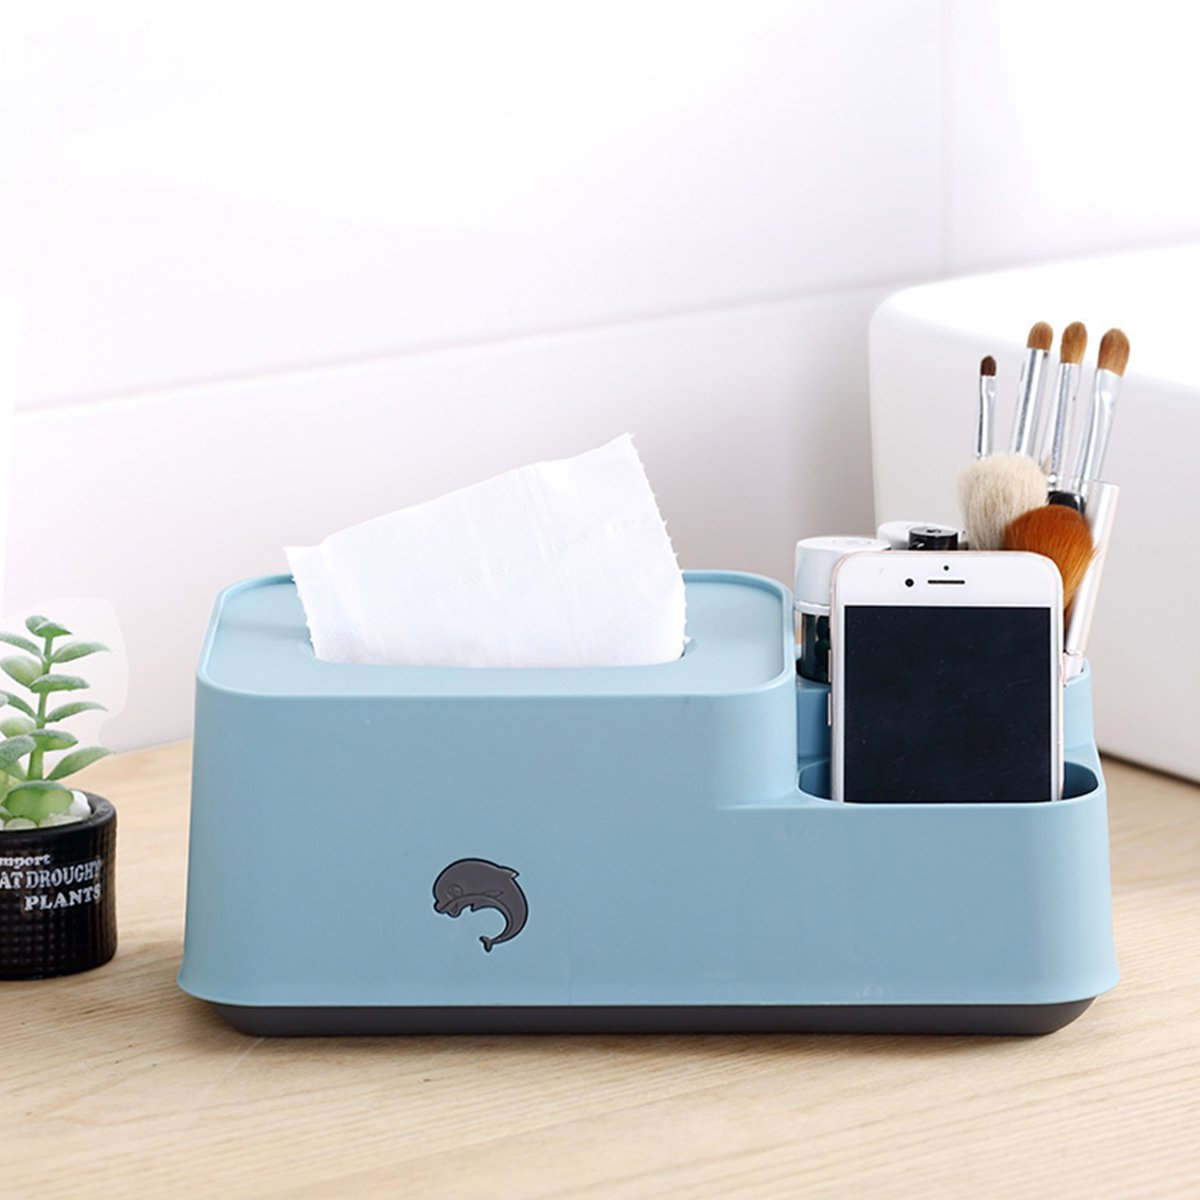 Multi Purpose Tissue Box Pp Plastic Household Desktop Paper Towel Holder Napkin Remote Control Sundries Storage Case Walmart Canada